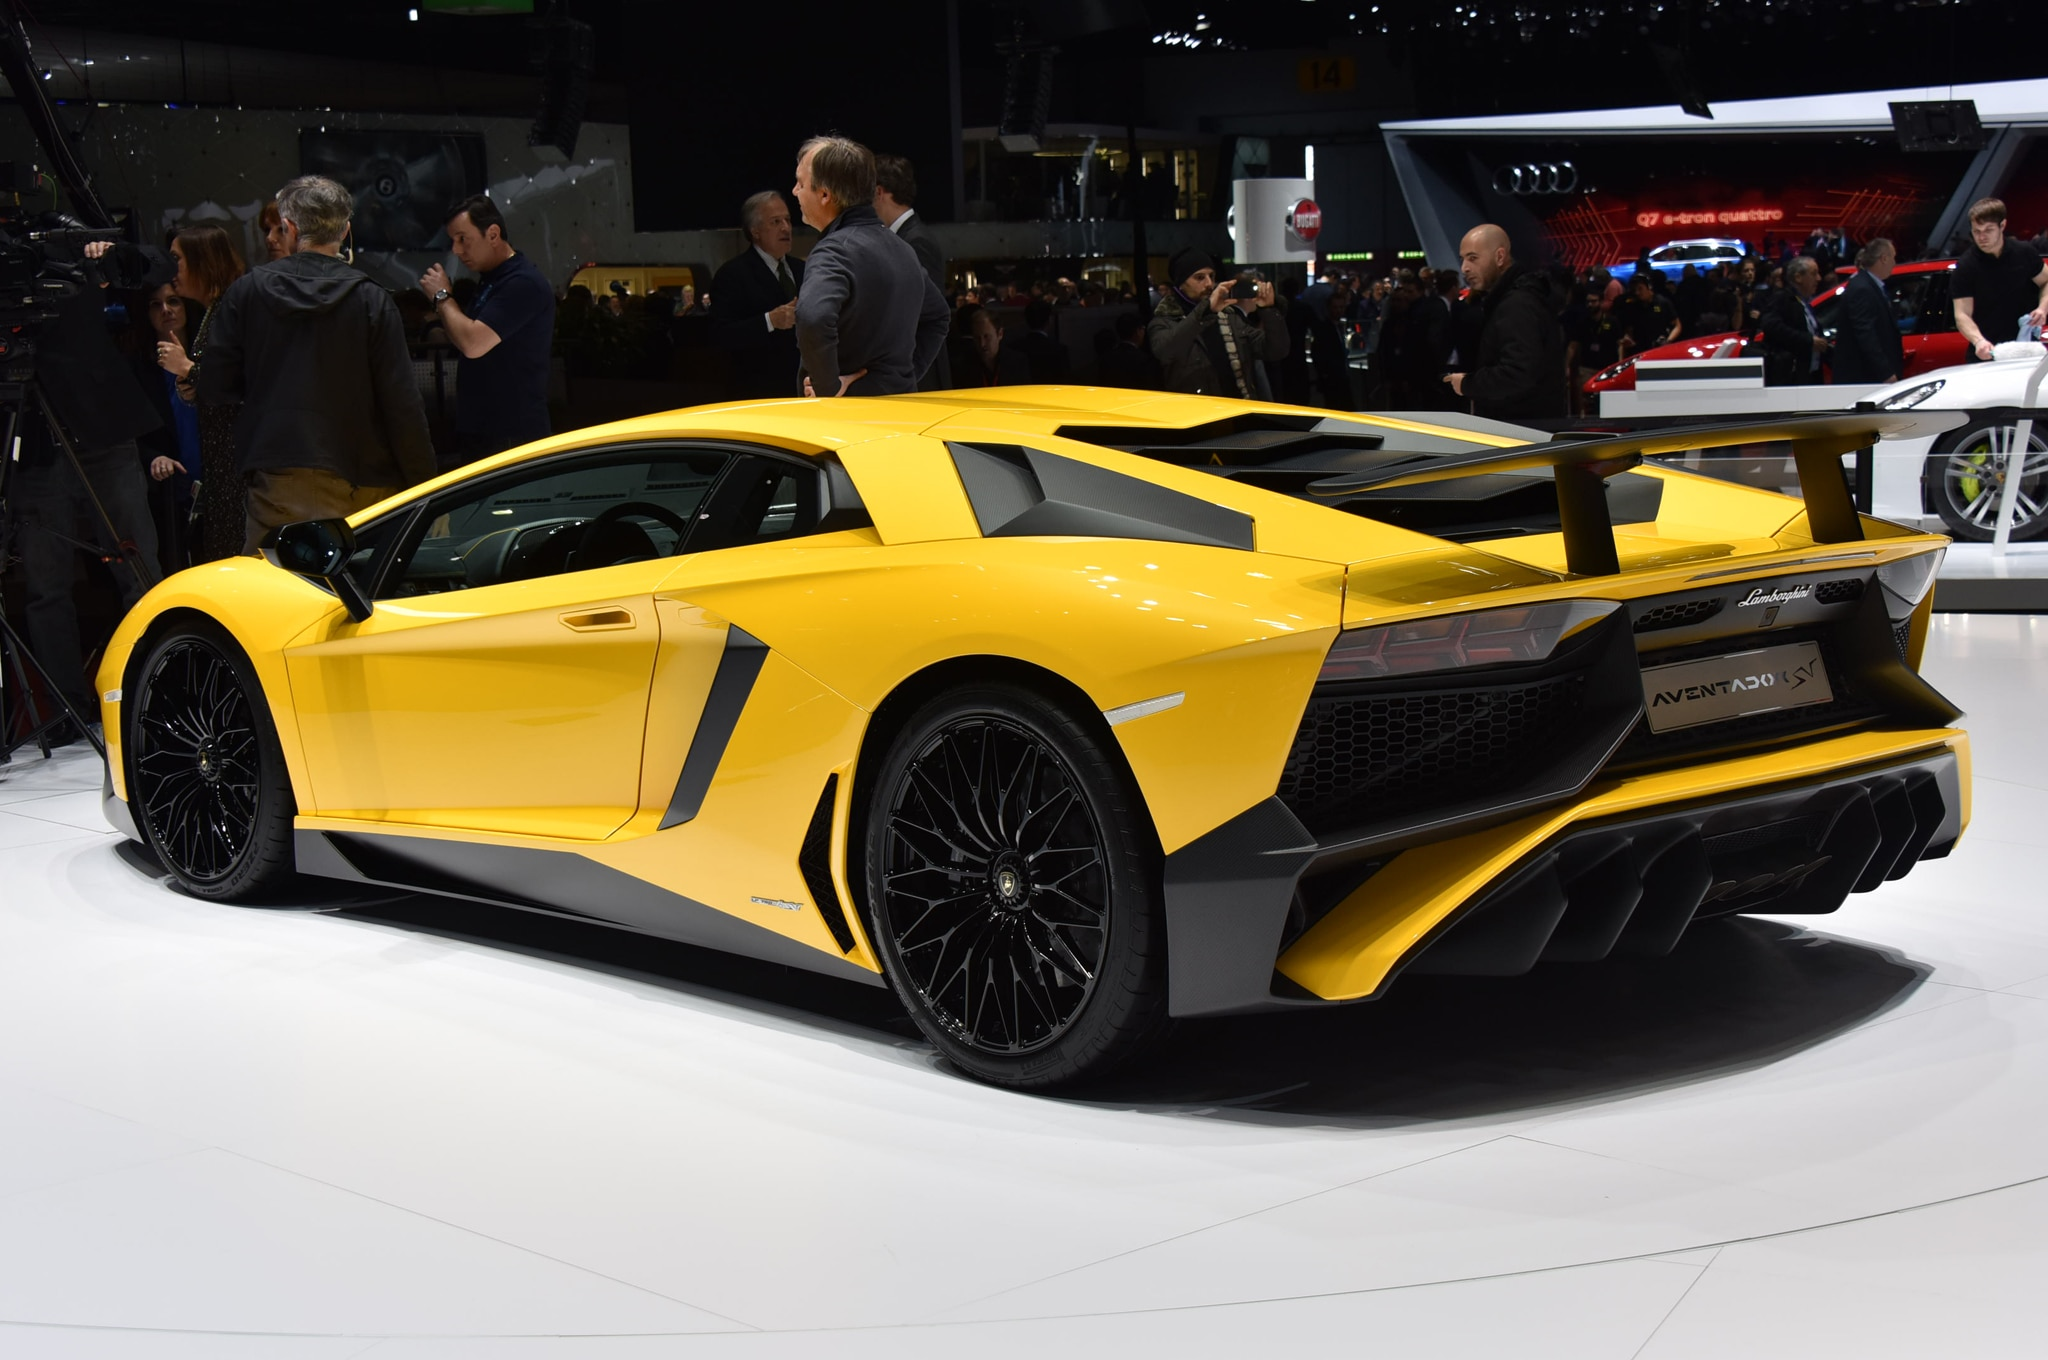 lamborghini aventador lp750 4 sv debuts with 740 hp. Black Bedroom Furniture Sets. Home Design Ideas